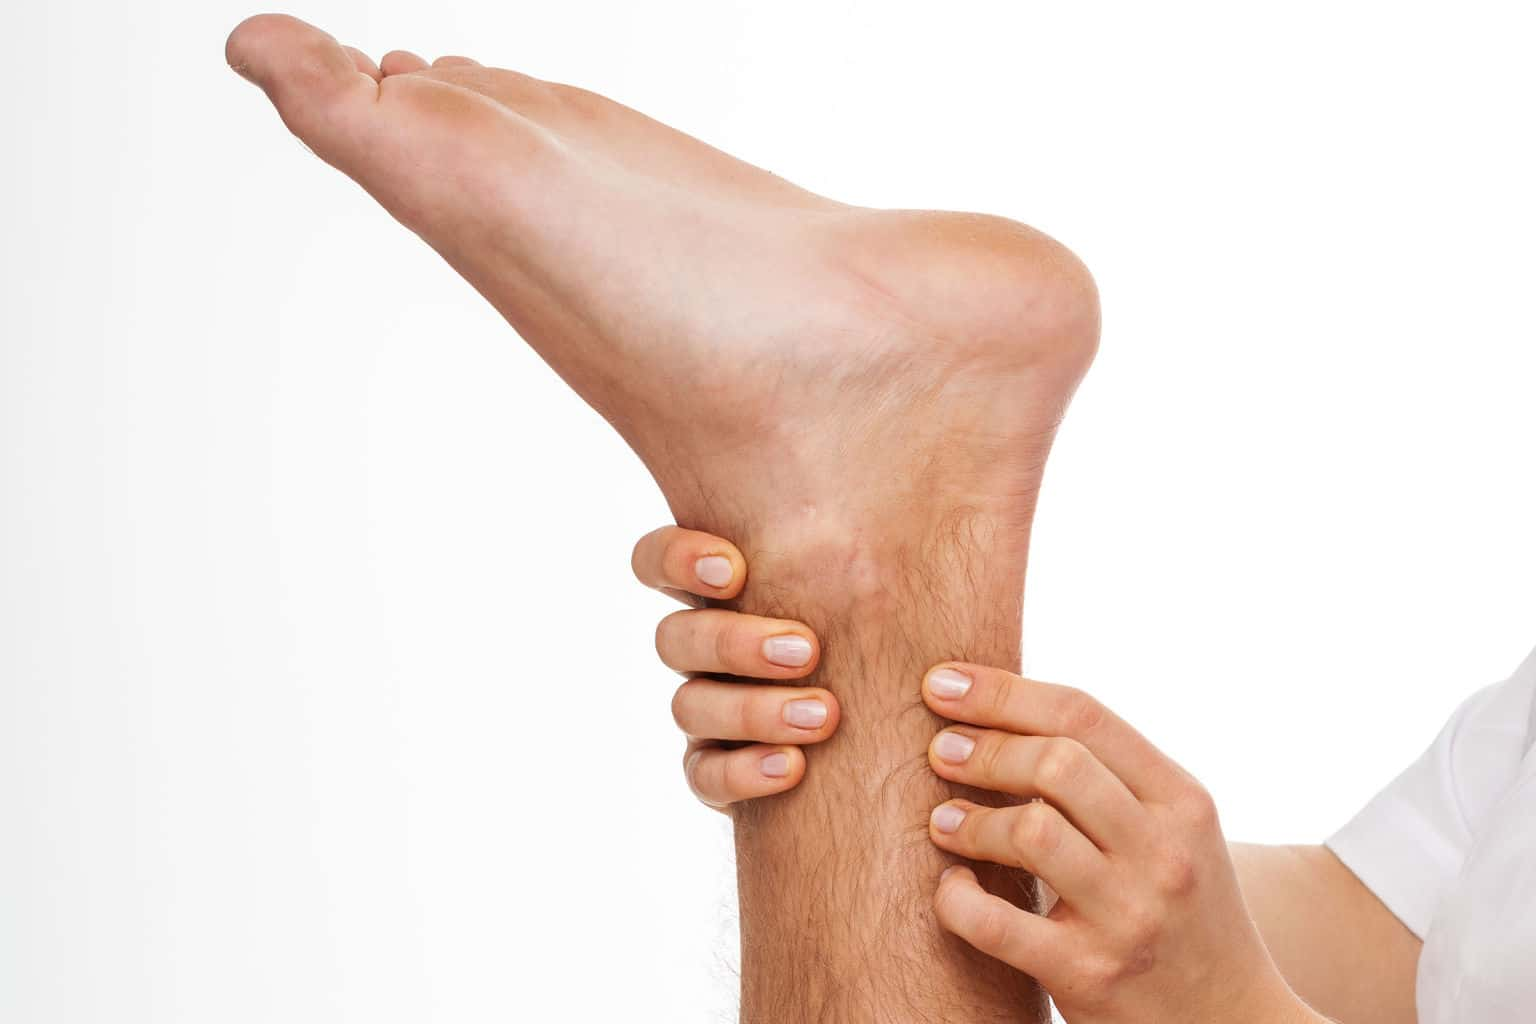 Achilles' tendon rupture treatment without surgery